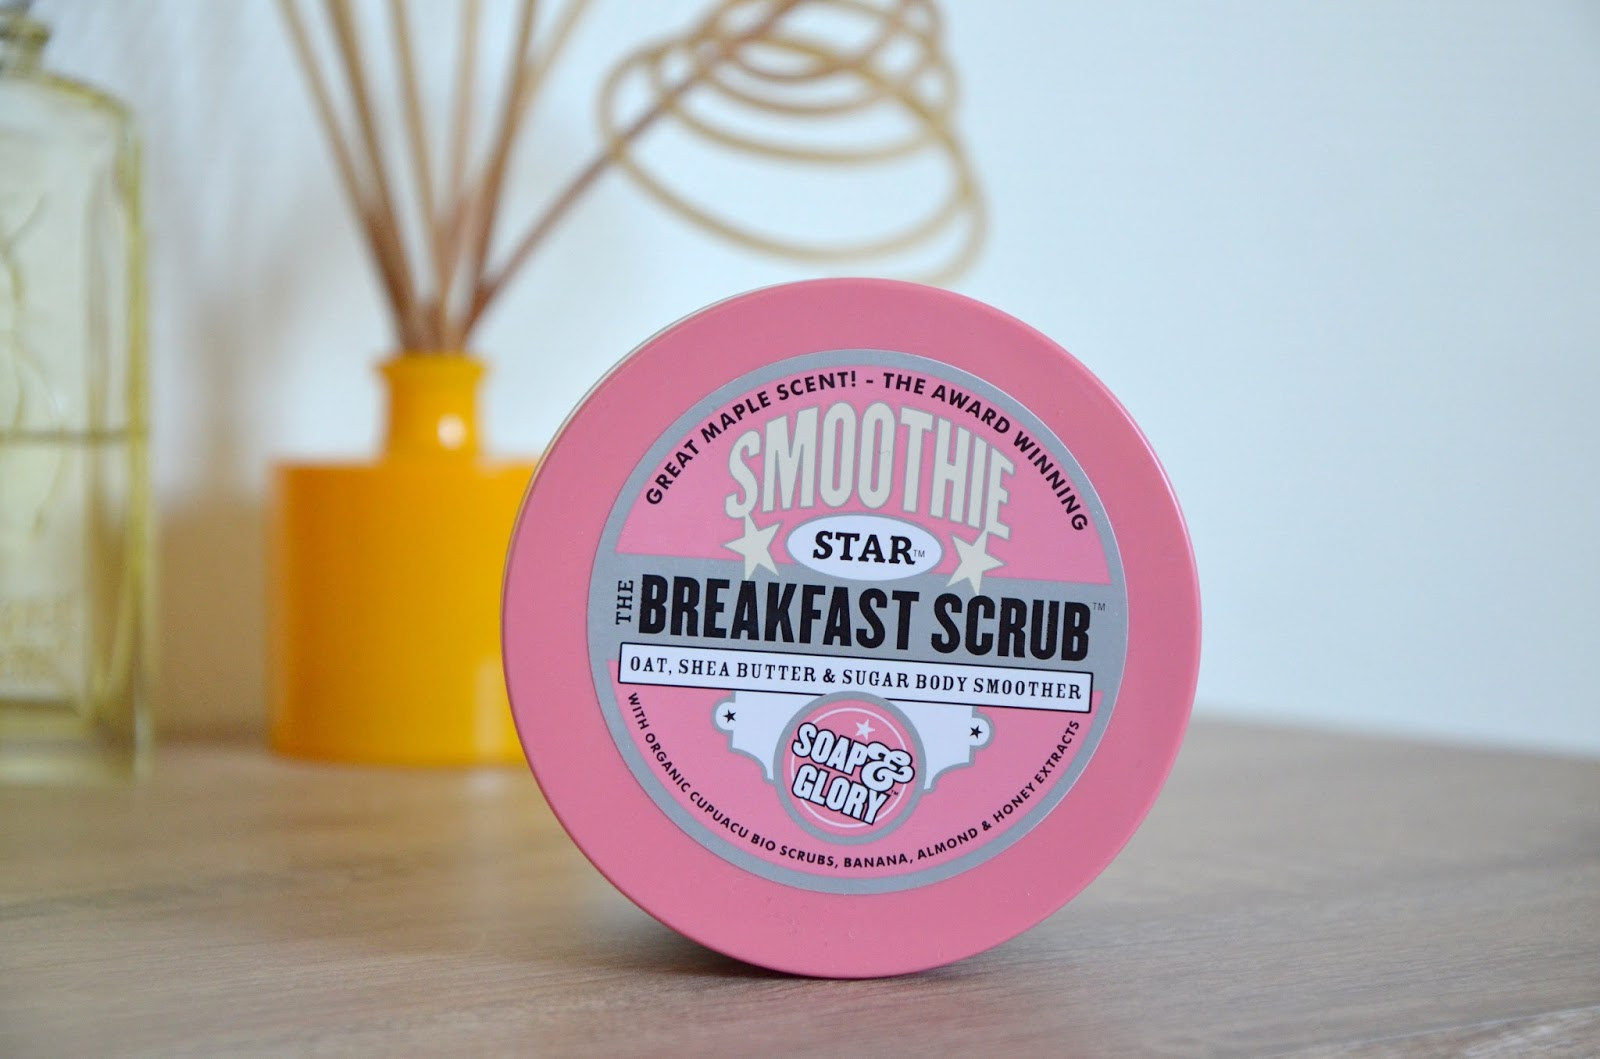 TAG mes 7 pêchés capitaux beauté Gommage exfoliant Smoothie Star The Brackfast Scrub Soap and Glory